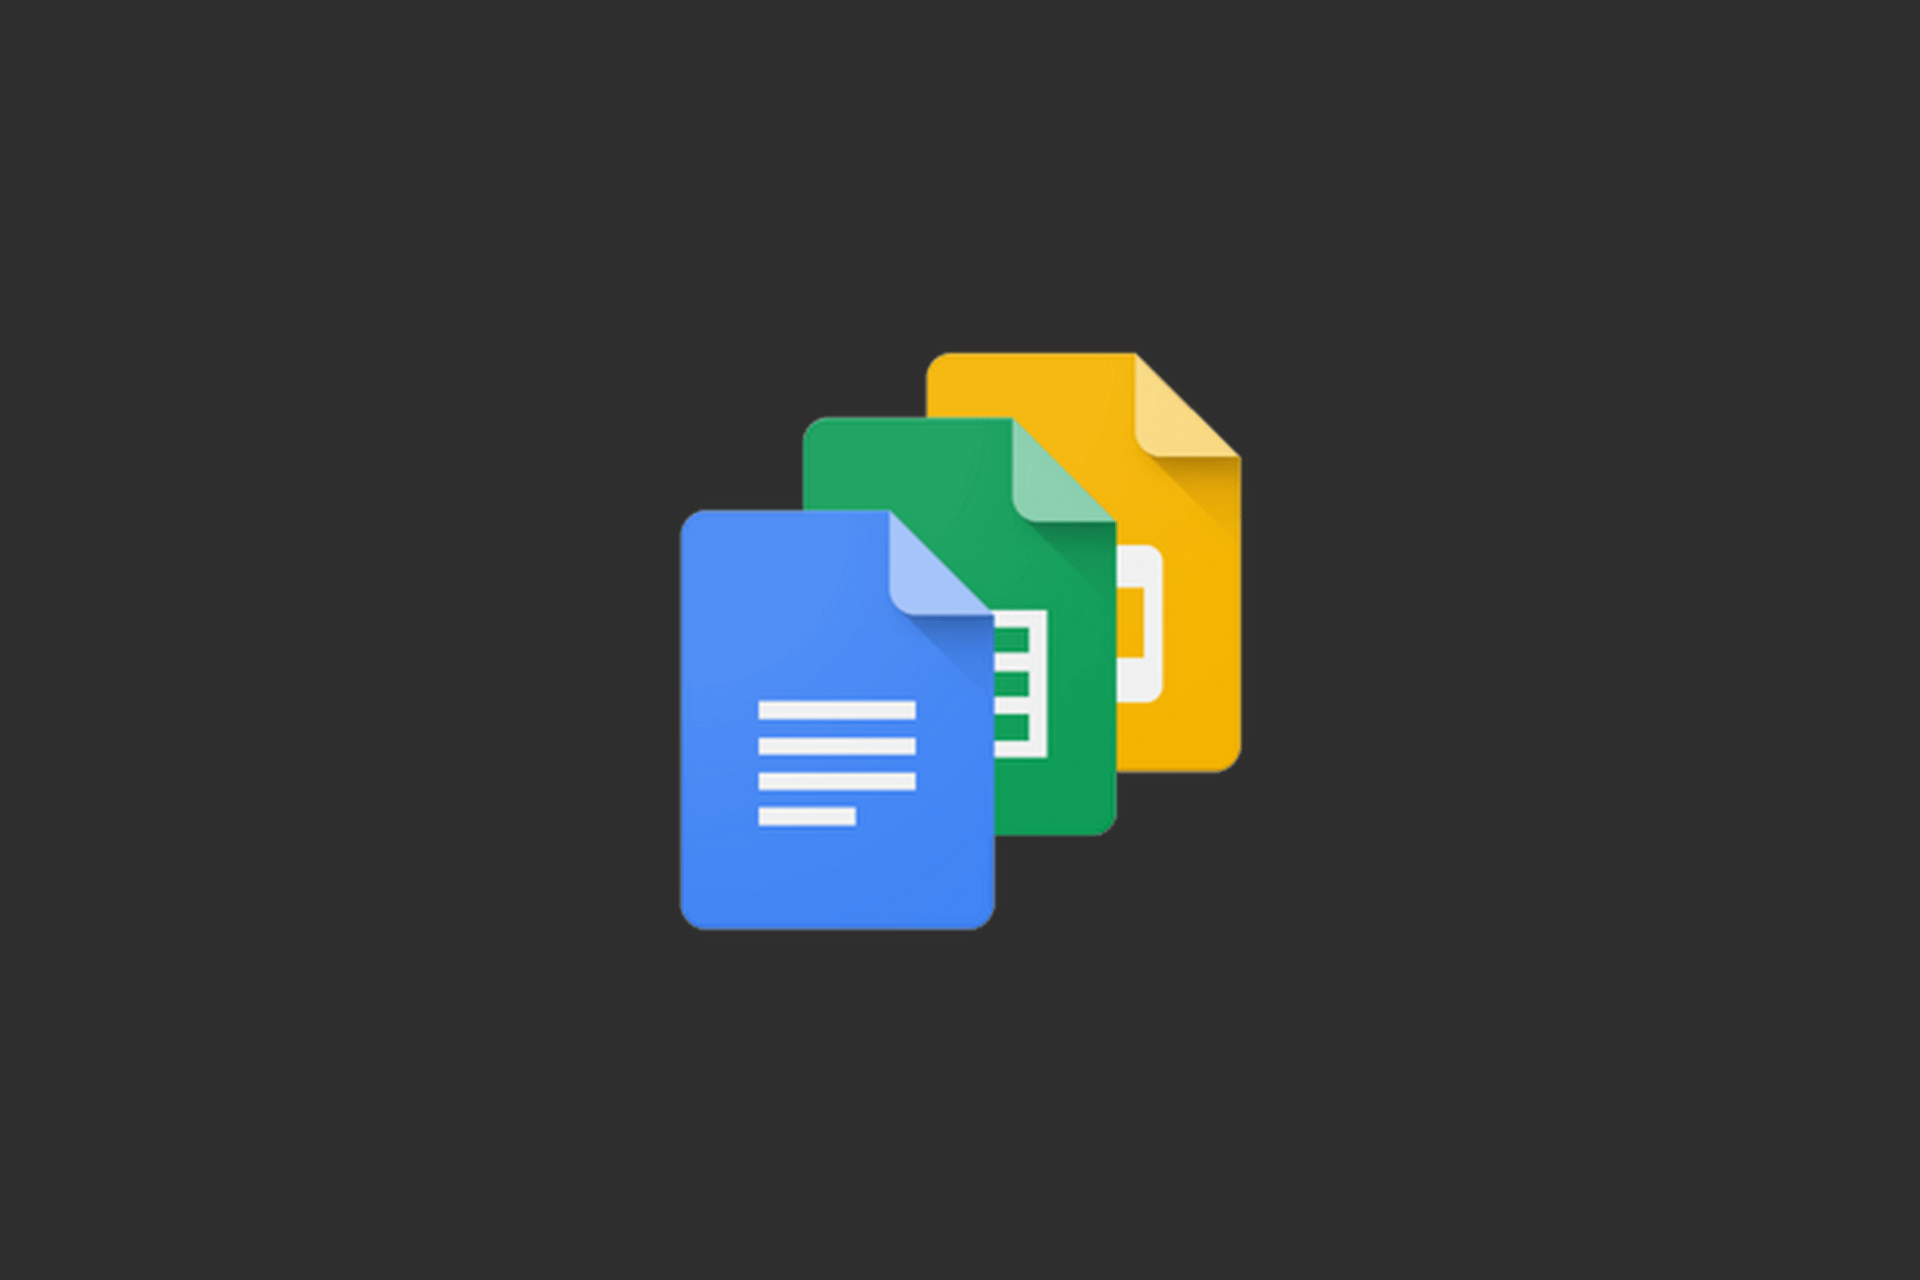 Google Docs, Sheets, and Slides for iOS gets Dark theme supports